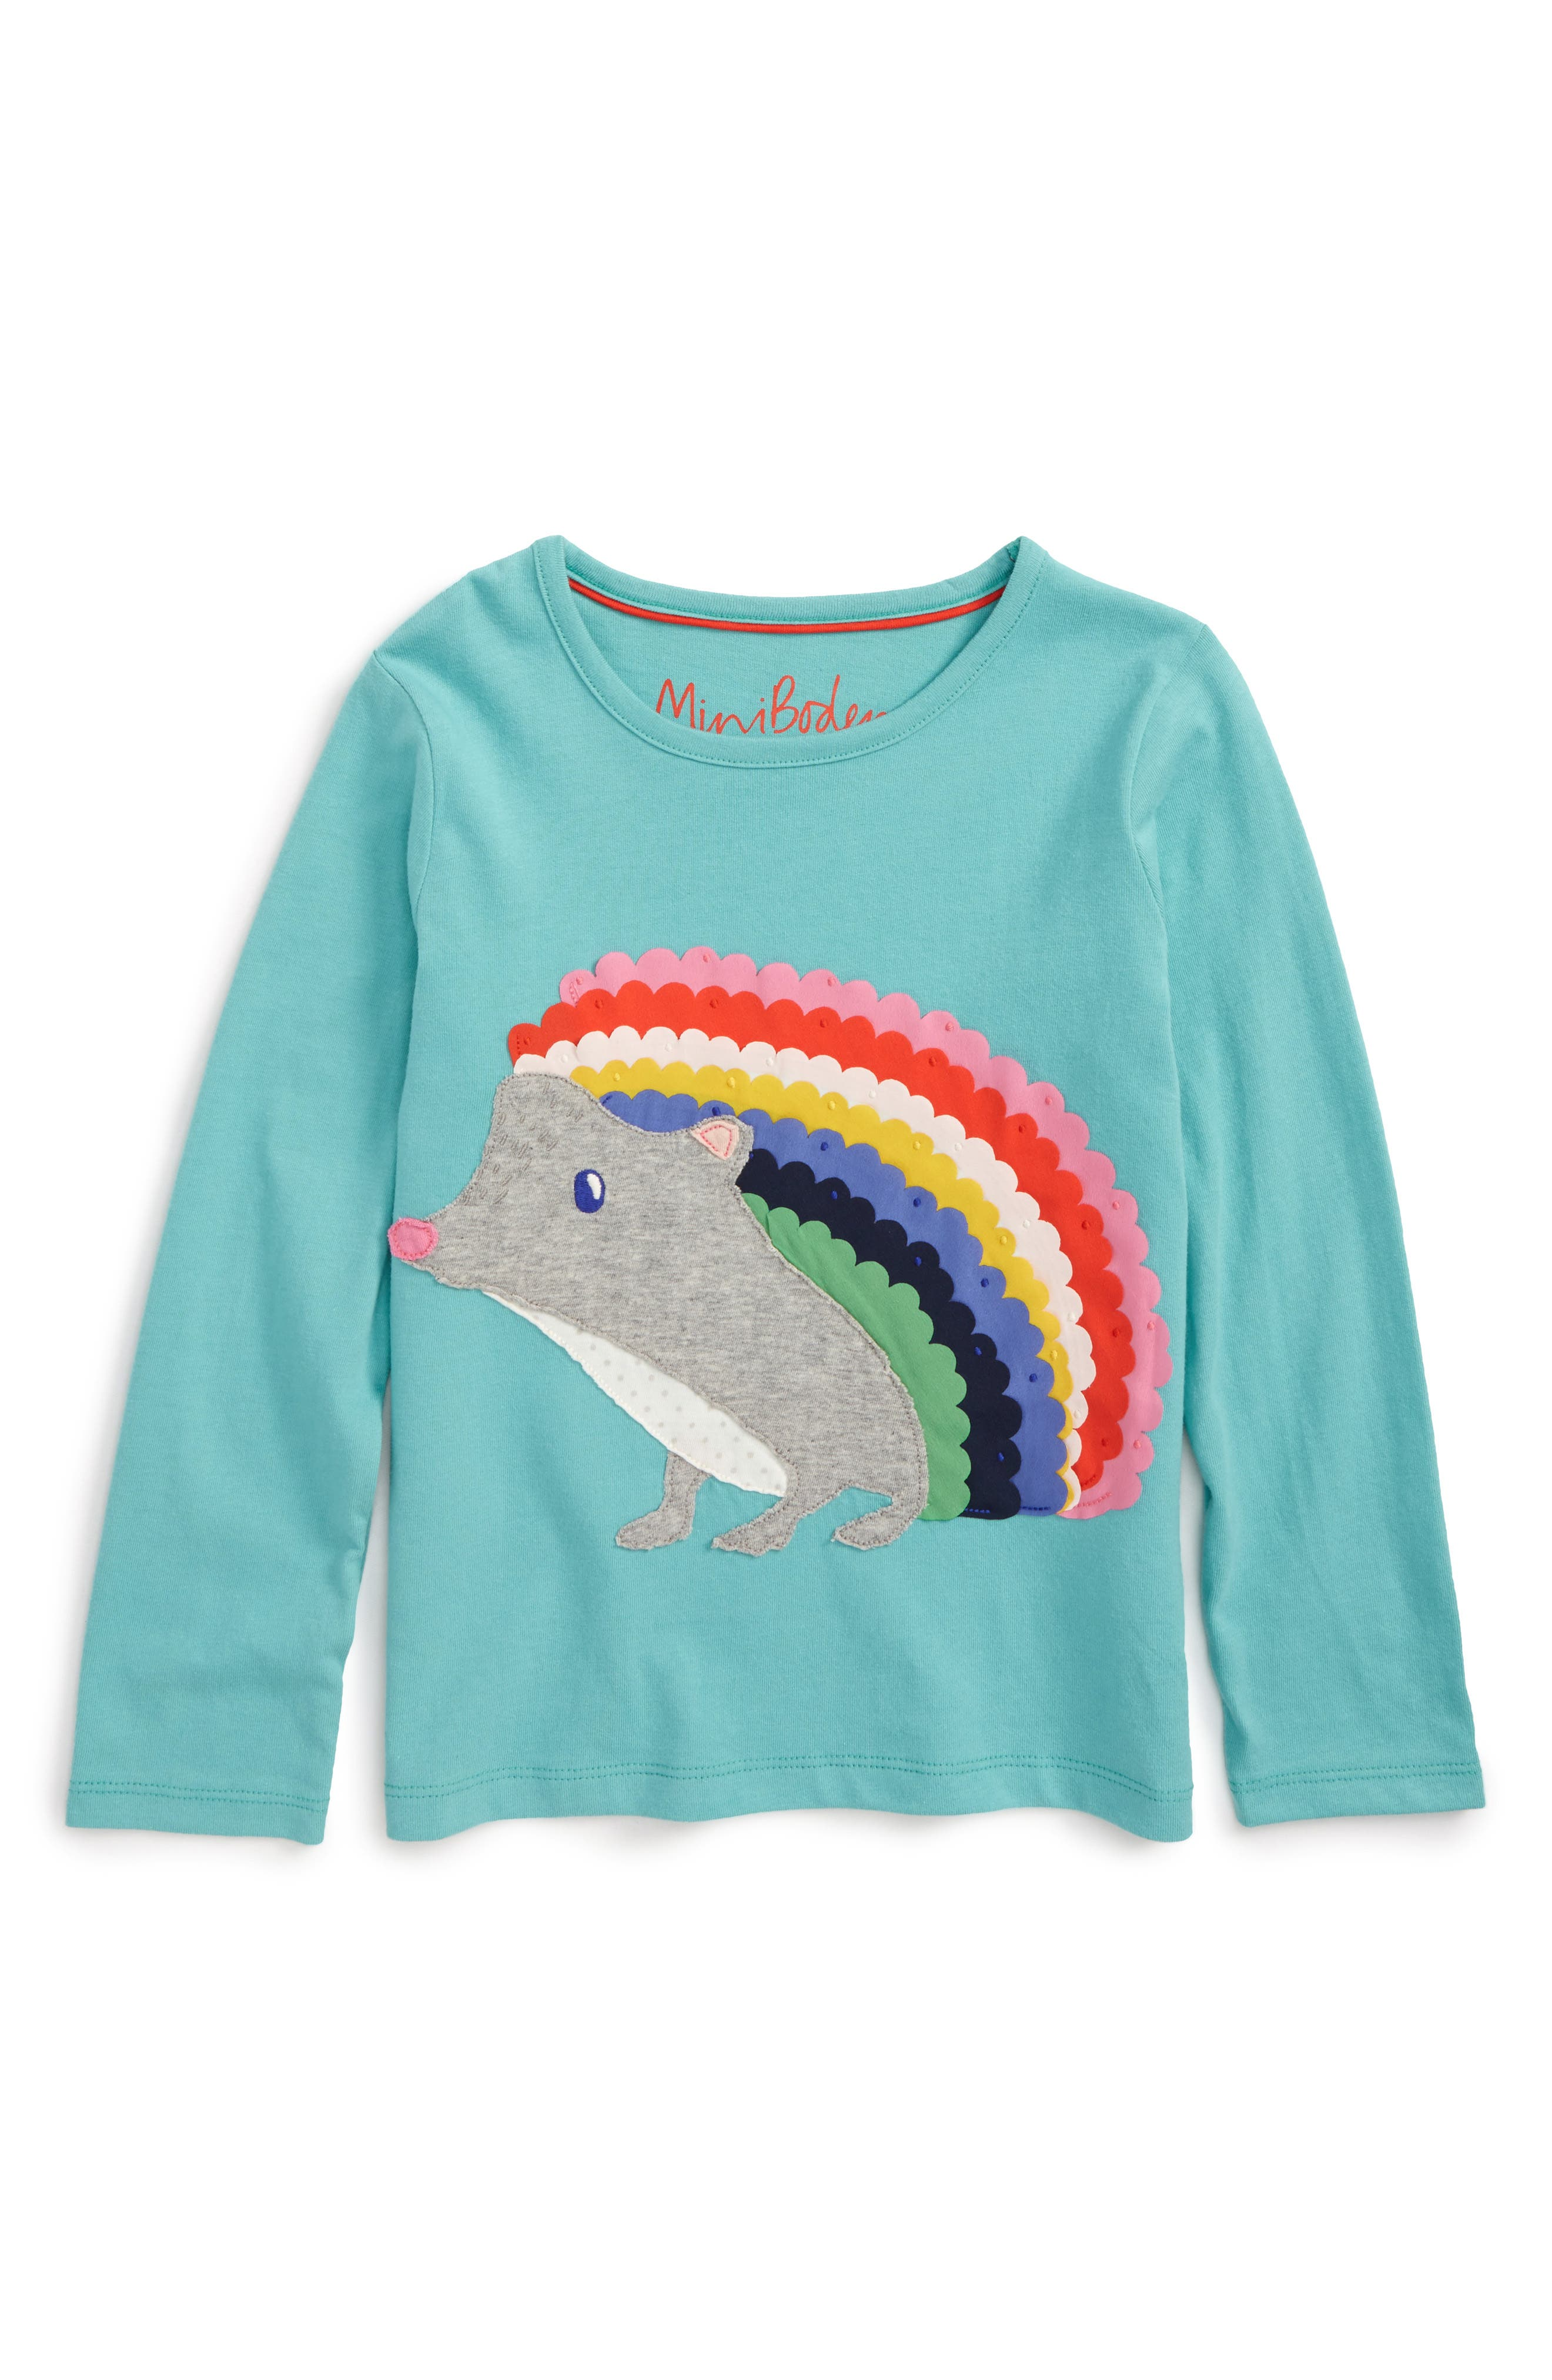 Alternate Image 1 Selected - Boden Big Appliqué T-Shirt (Toddler Girls, Little Girls & Big Girls)